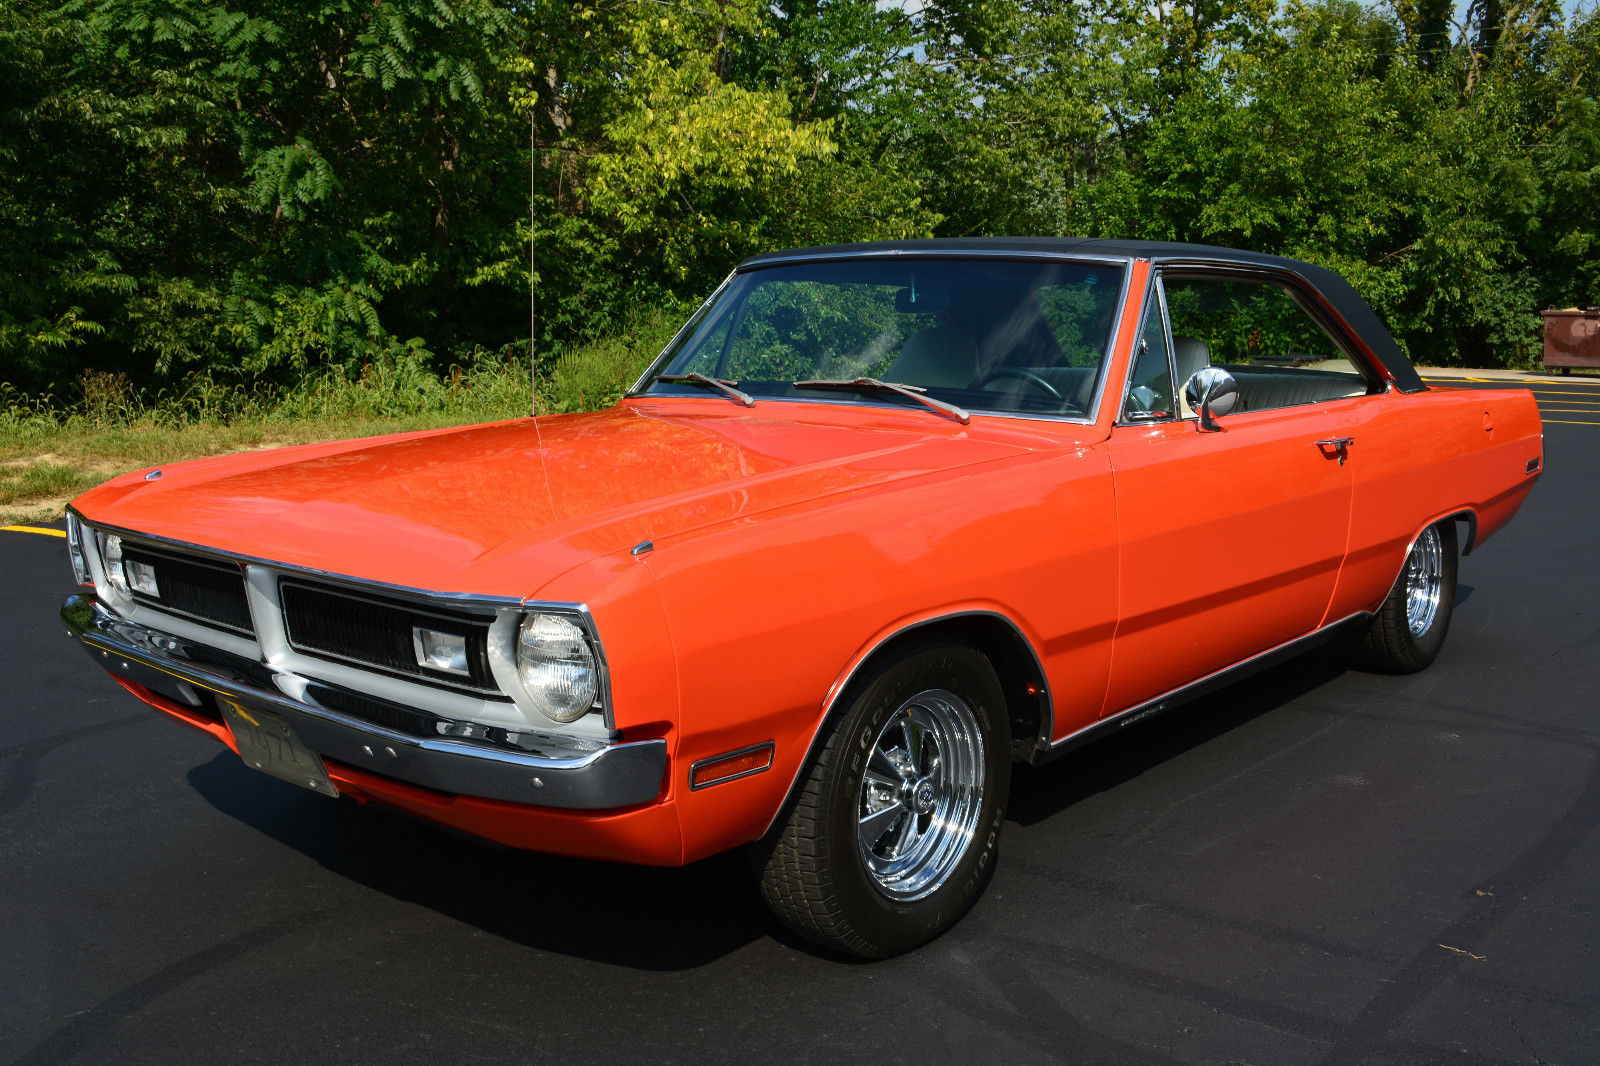 1971 Dodge Dart GT ***Low Miles *** Restored - Classic Dodge Dart 1971 for sale